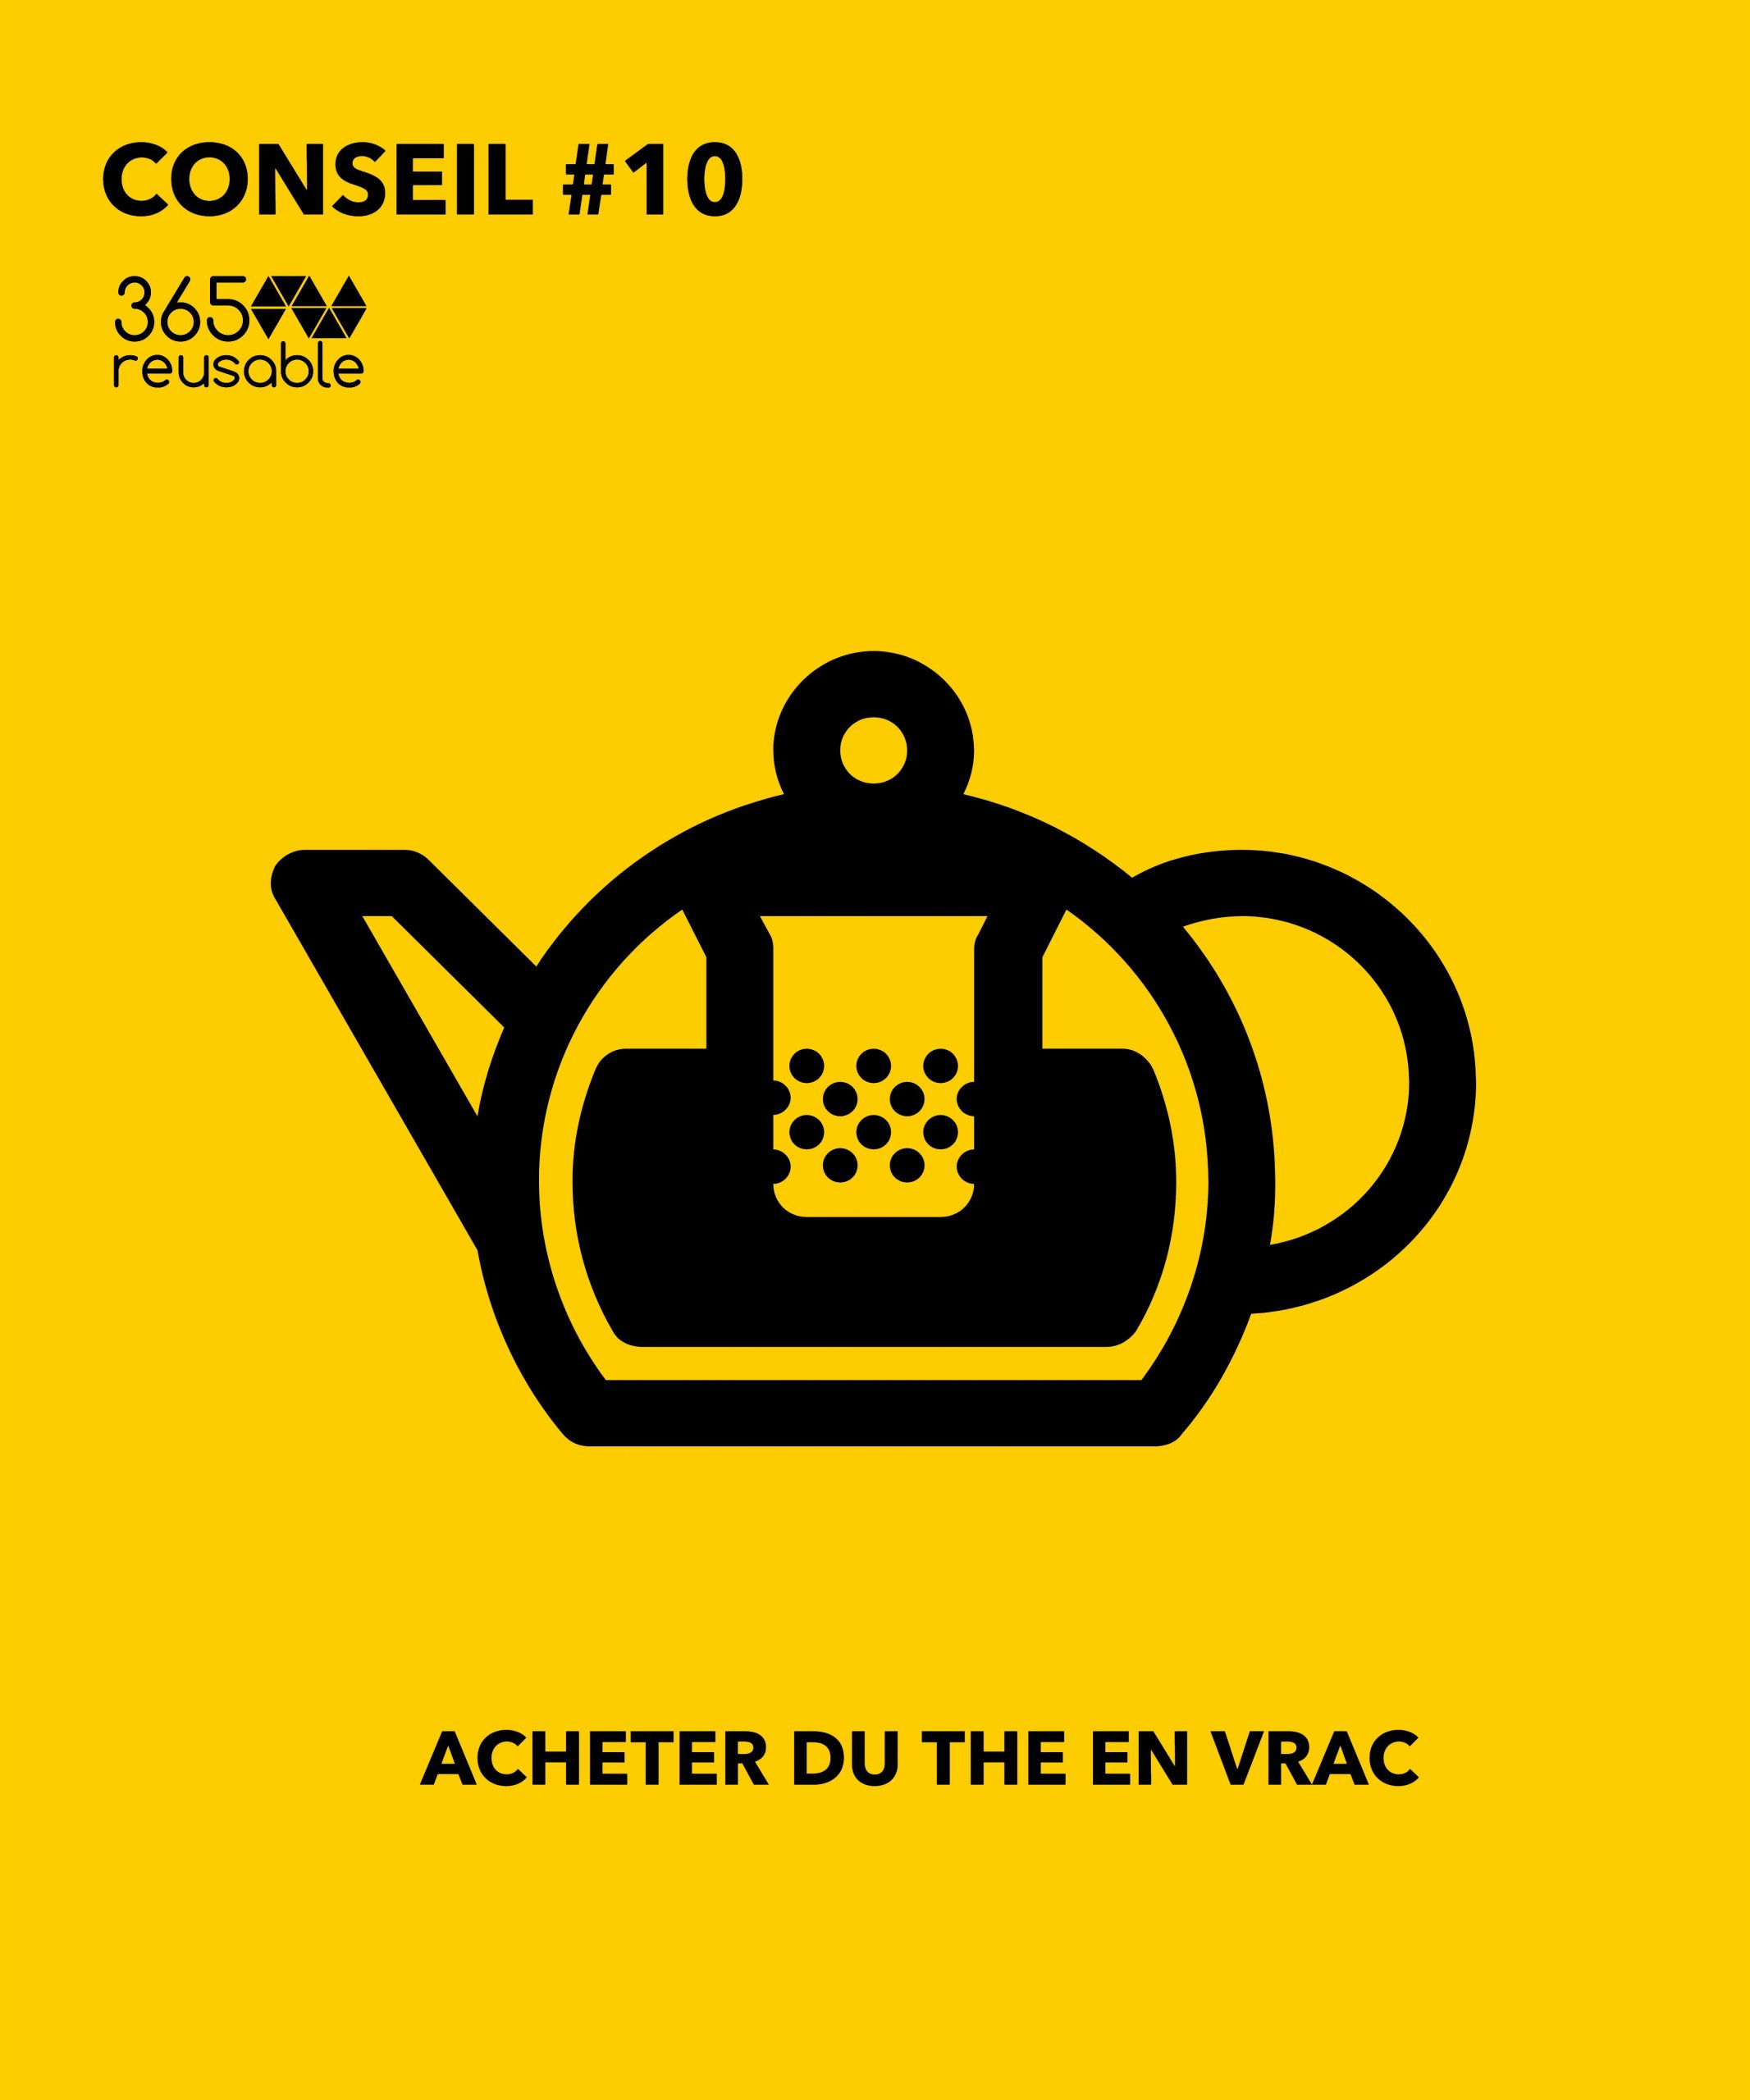 10 conseil scaled